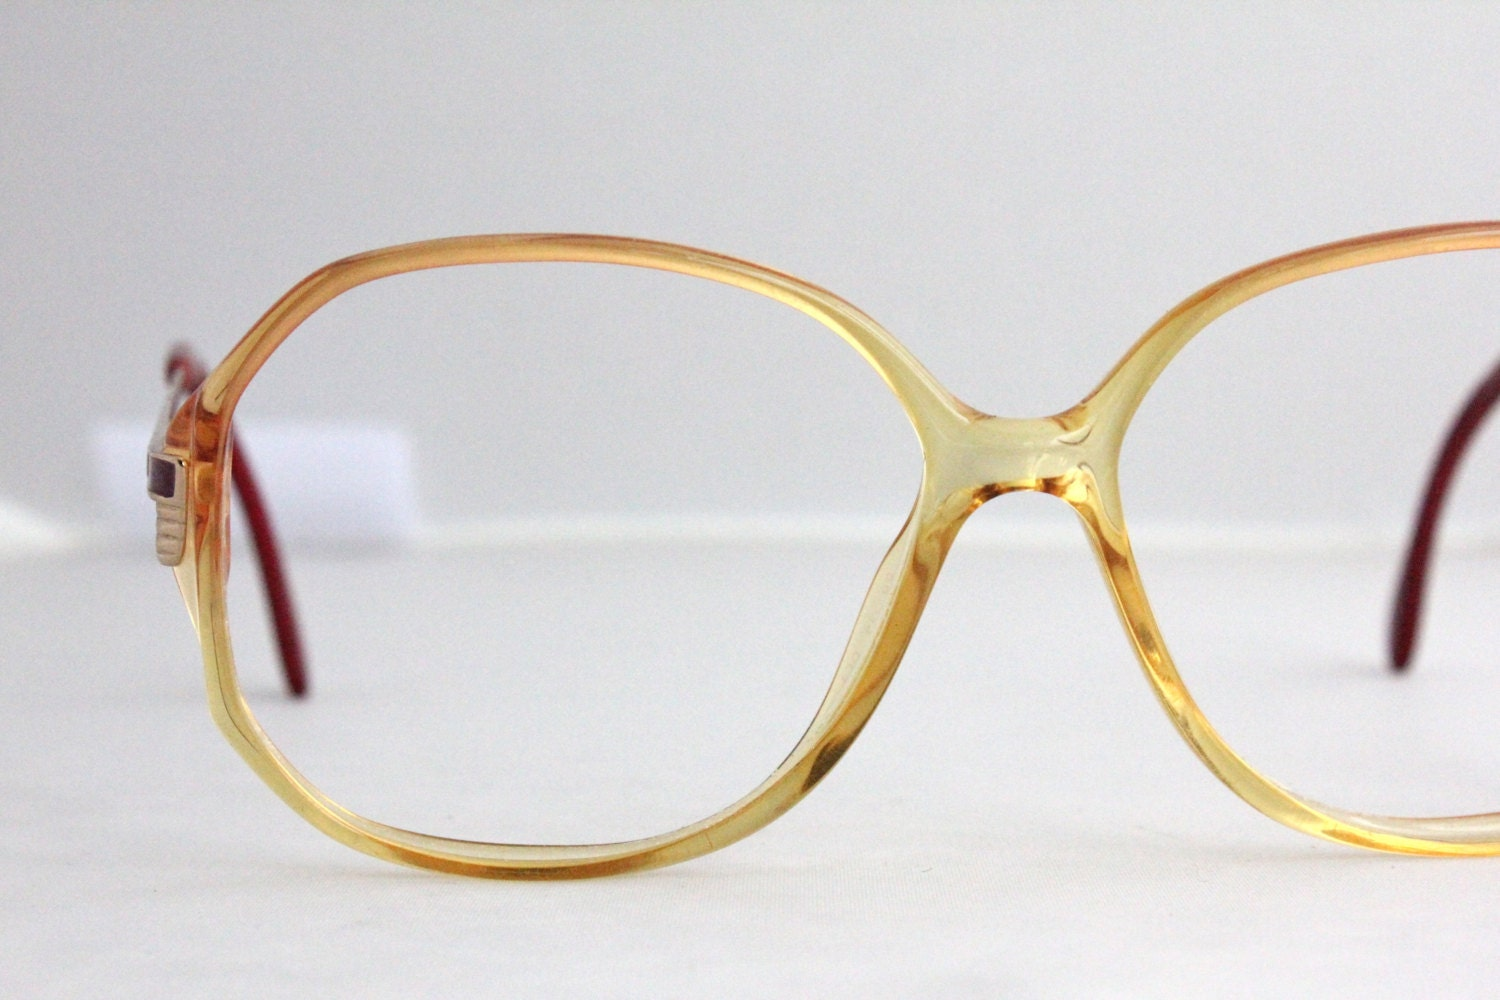 Eyeglass Frame In German Language : Vintage German Sunset Oversized Eyeglass Frames by Sorocco ...